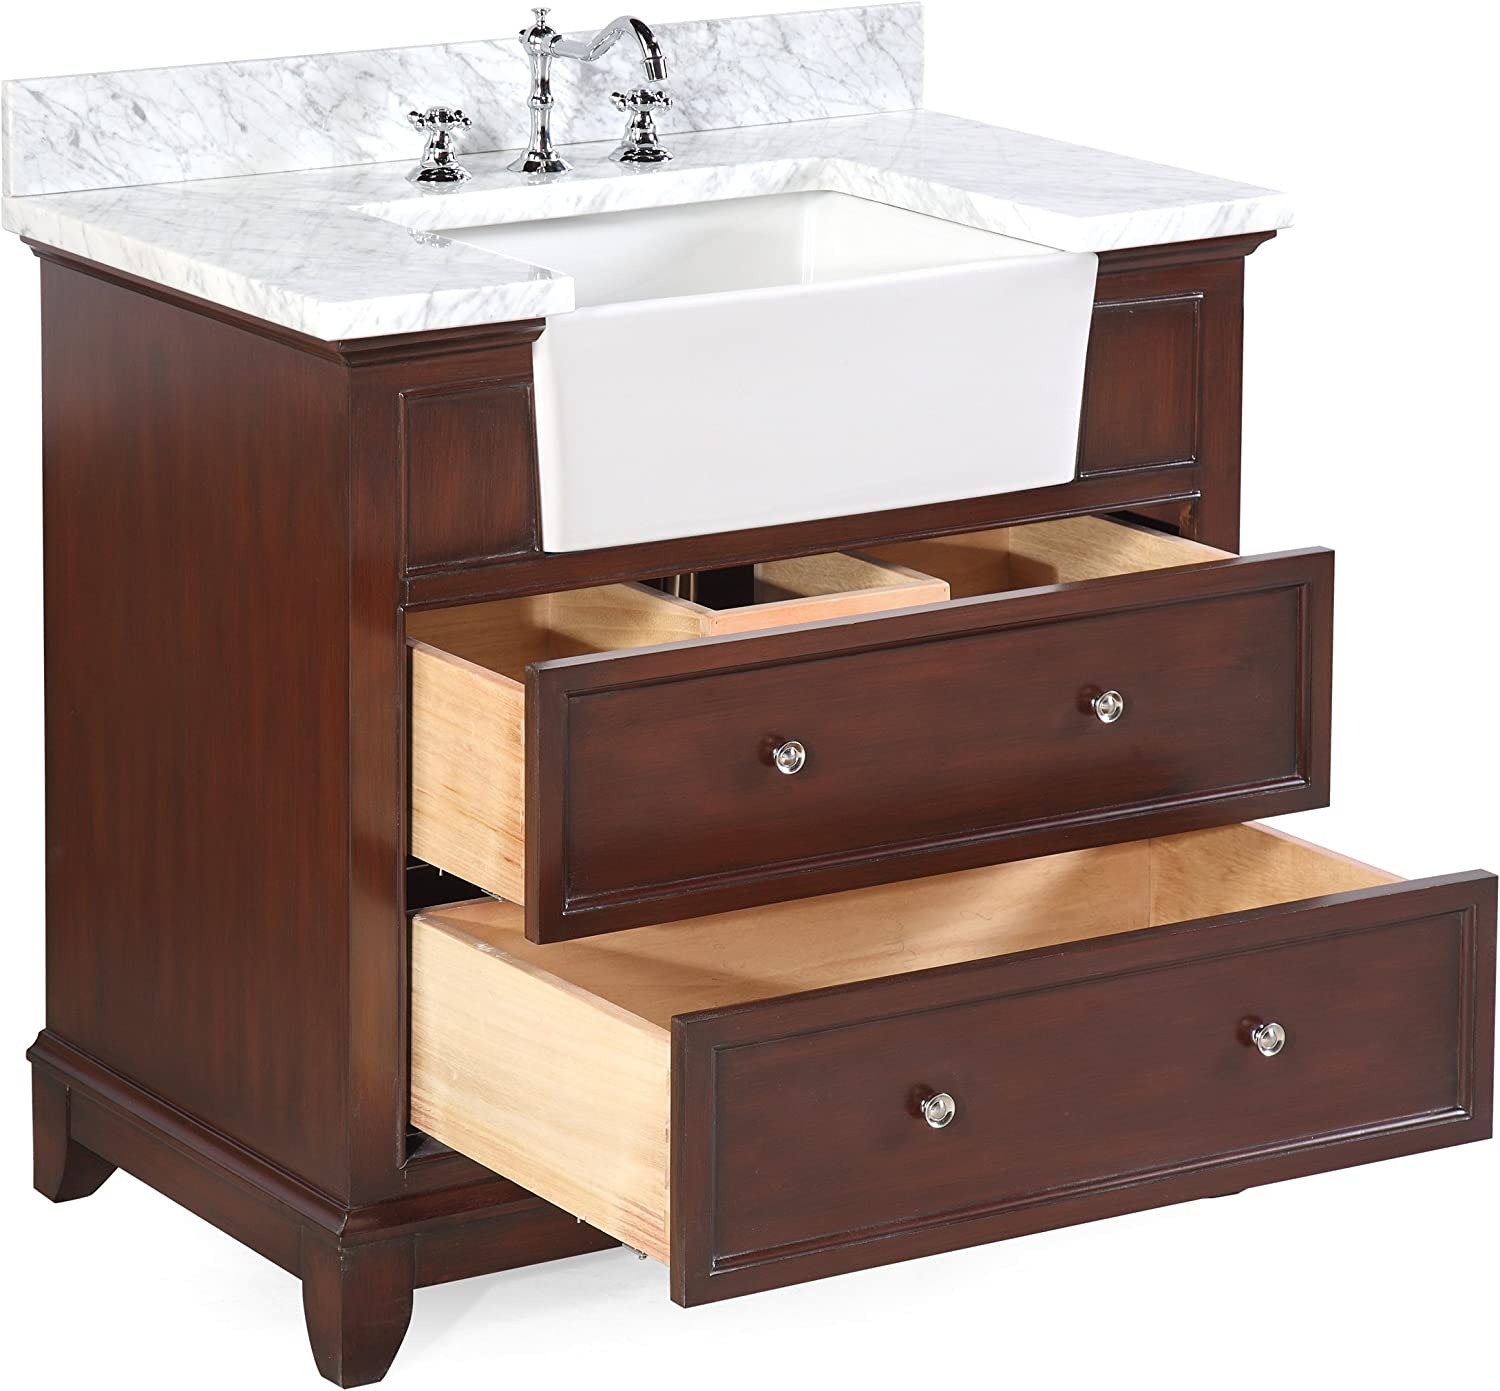 Amazon Com Sophie 36 Inch Farmhouse Bathroom Vanity Carrara Chocolate Includes Chocolate Cabinet With Authentic Italian Carrara Marble Countertop And White Ceramic Farmhouse Apron Sink Kitchen Dining